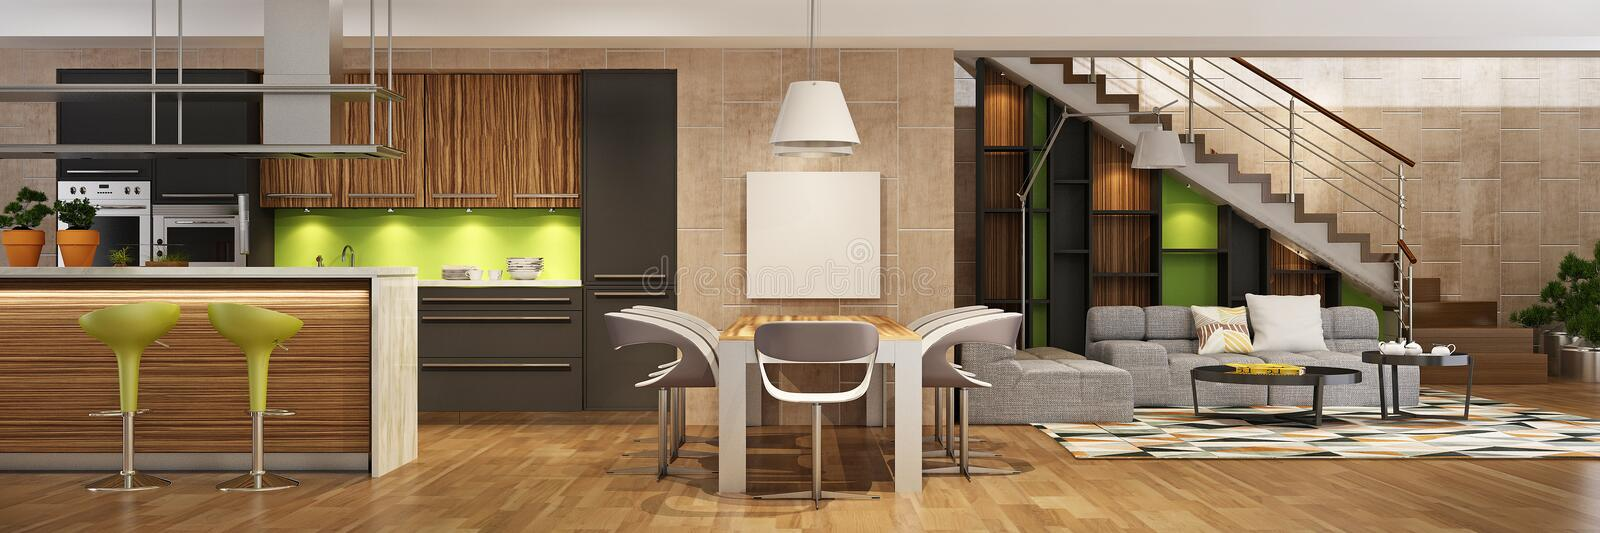 Modern house interior of living room and a kitchen in black and green colors. Modern house interior of living room and a kitchen in black and green colors in royalty free stock photo